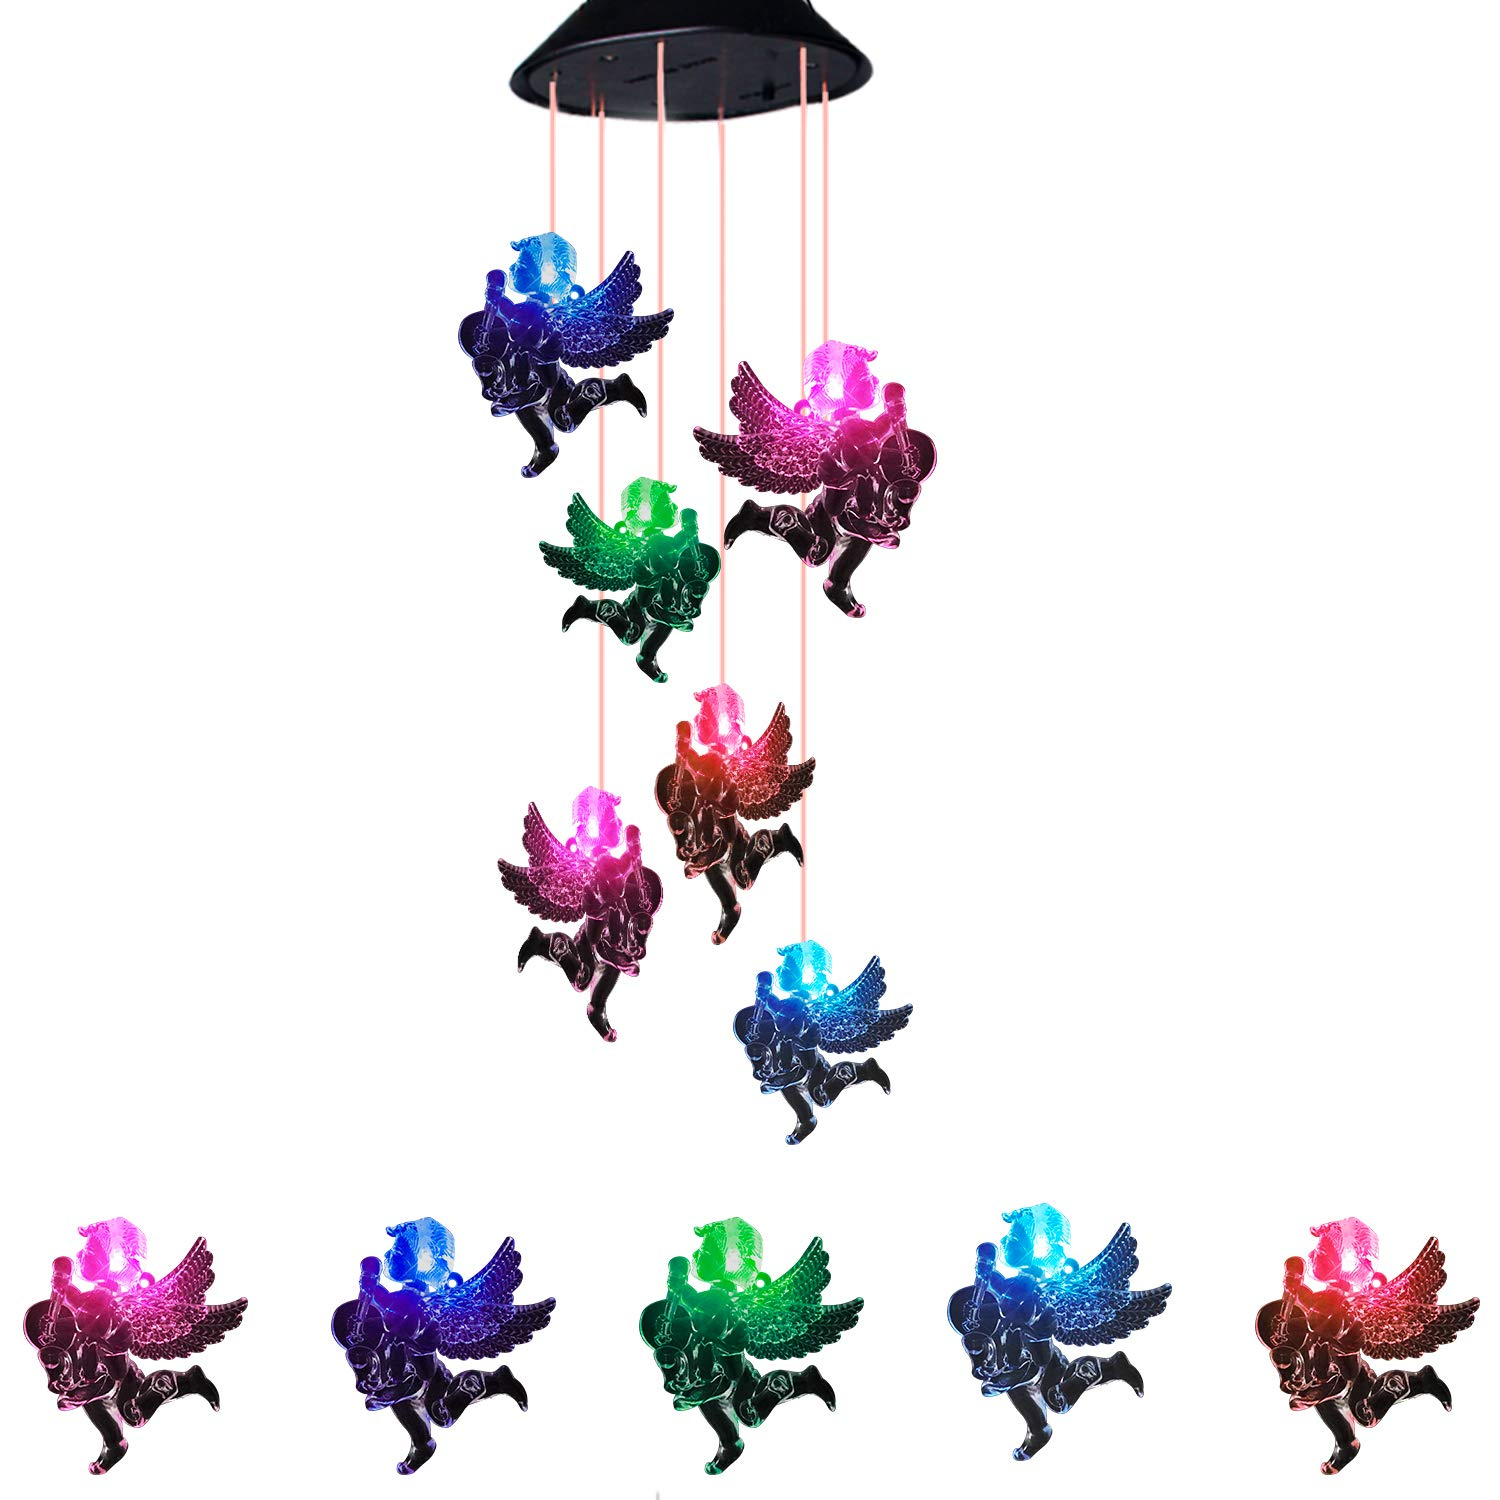 Suniness Solar Powered Wind Chimes, LED Solar Mobile Wind Chime,Color-Changing Waterproof LED Hanging Lamp Wind Chime for Outdoor Indoor Gardening Lighting Decoration Home (Angel) by Suniness